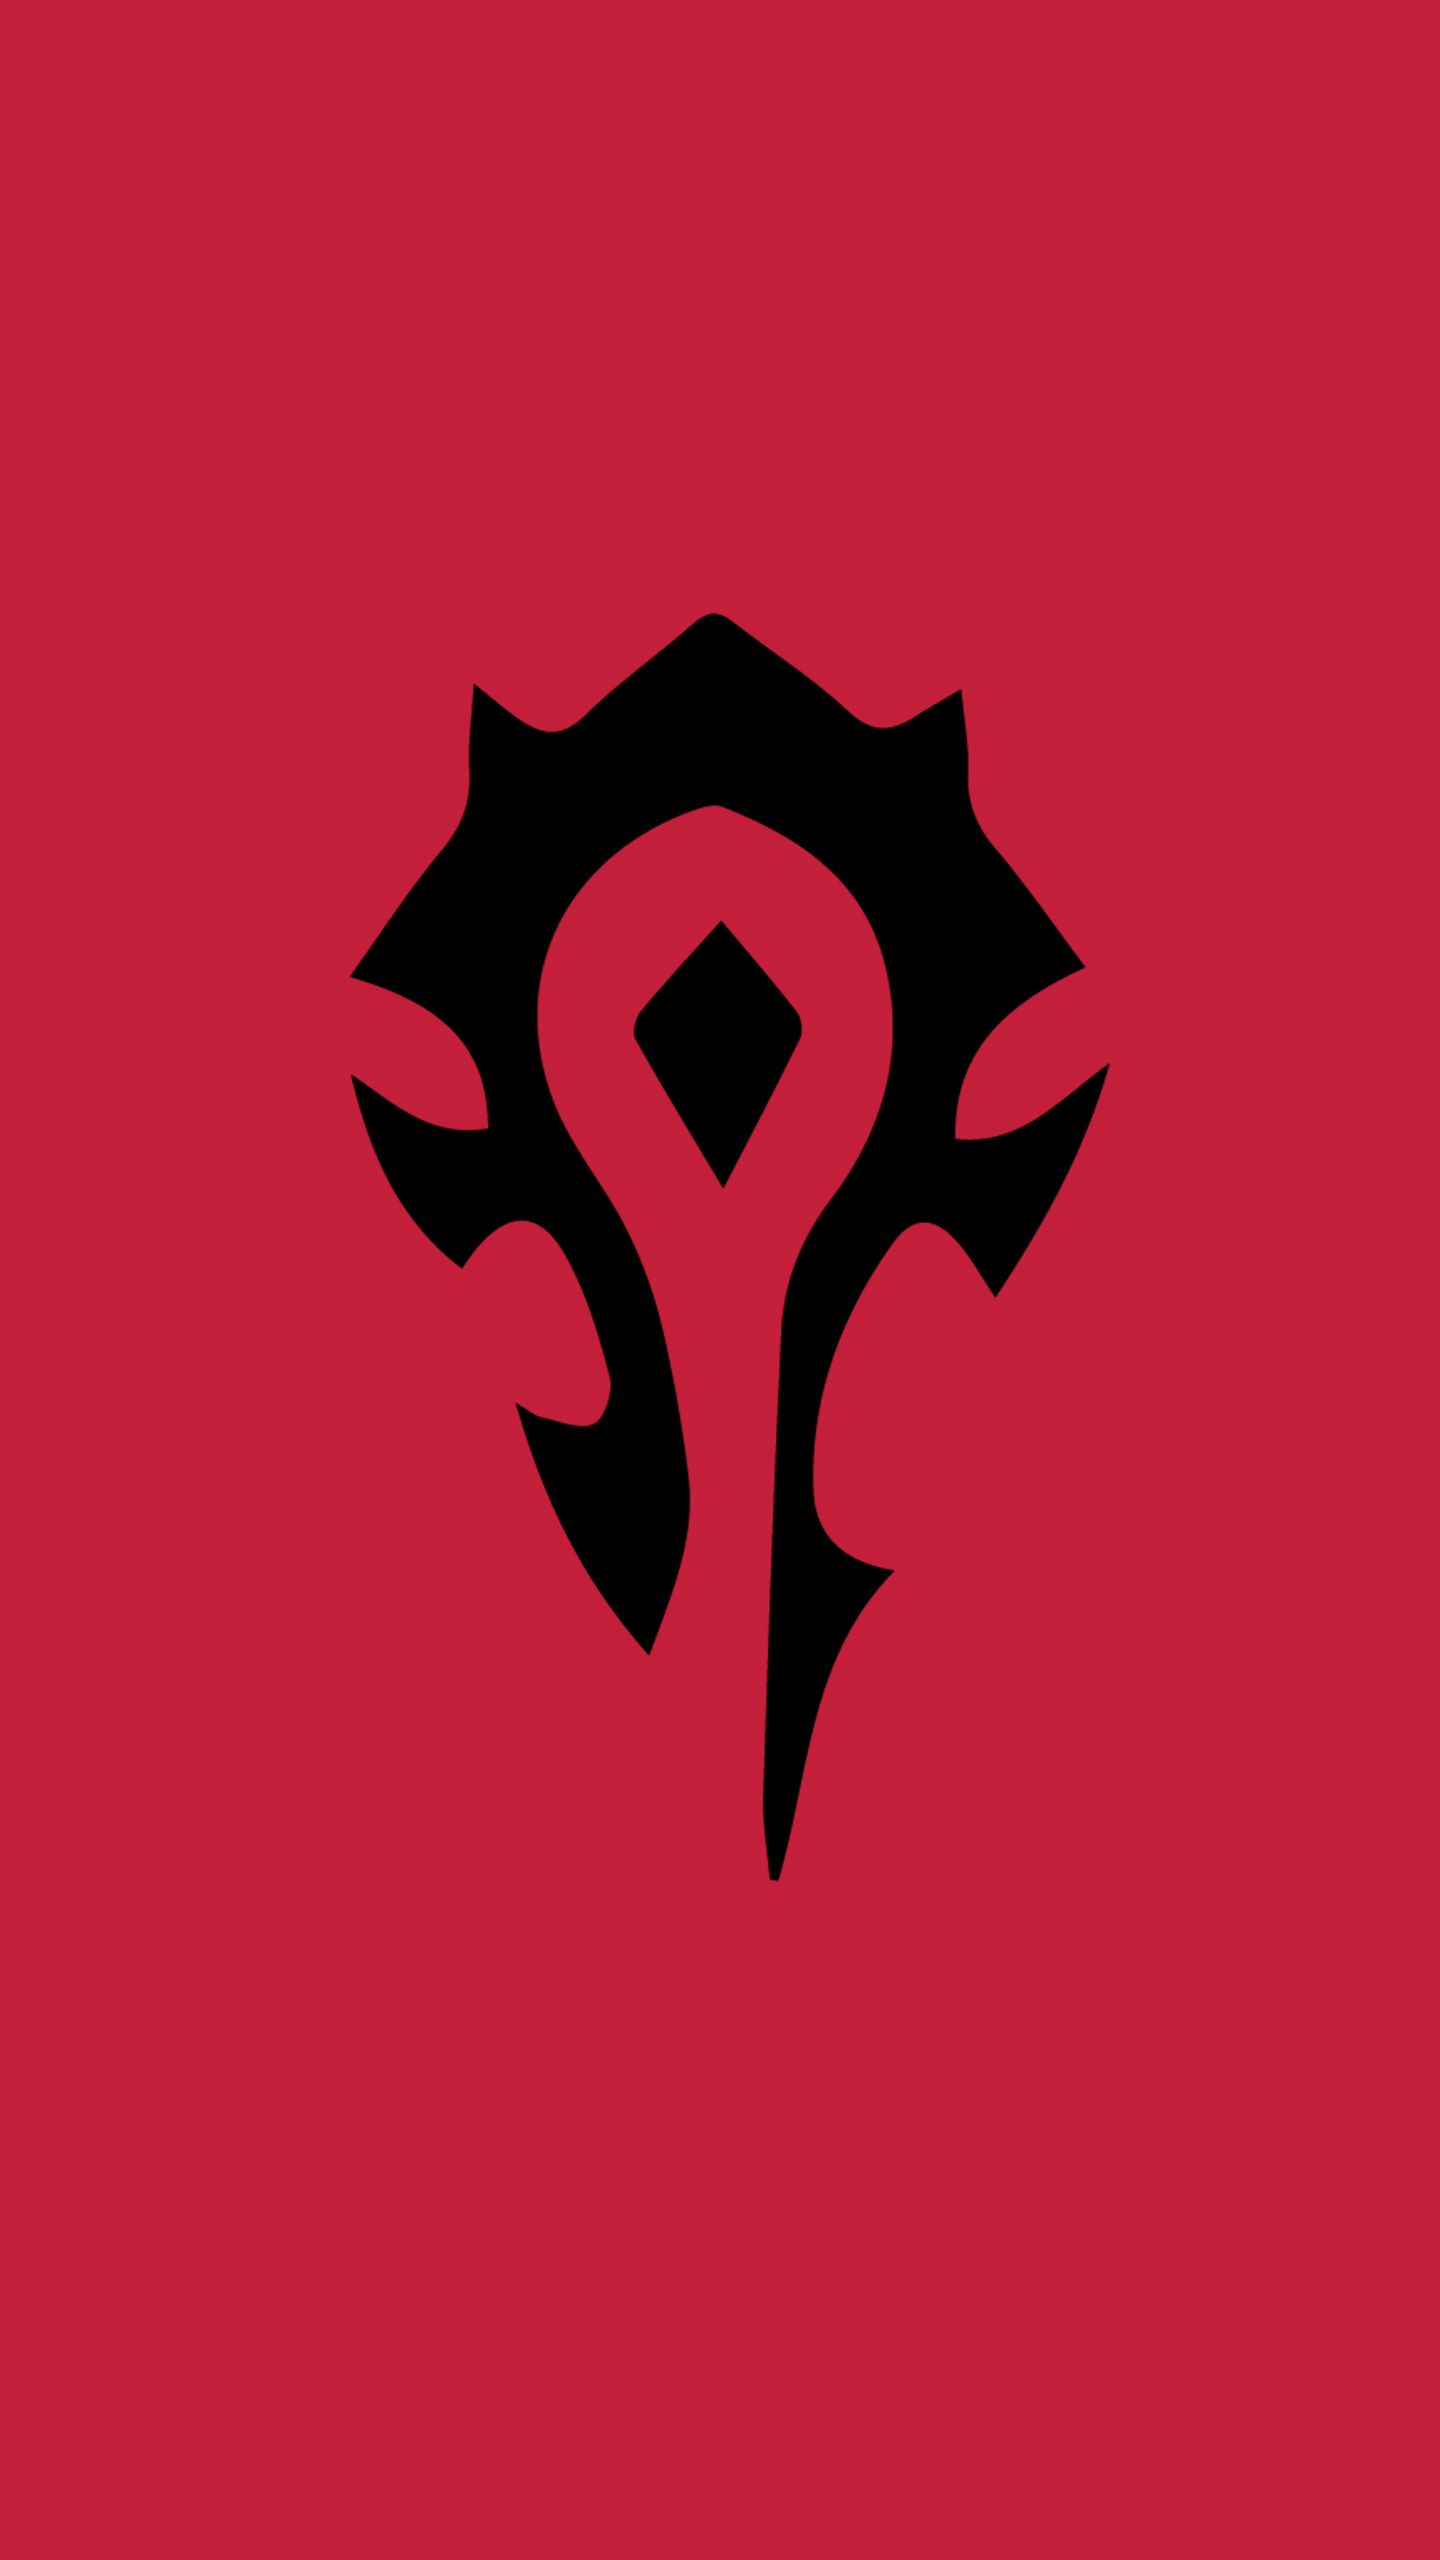 Made A Horde Phone Wallpaper For Myself Thought I D Share Worldofwarcraft Blizzard Hearthstone World Of Warcraft Wallpaper Warcraft Art World Of Warcraft